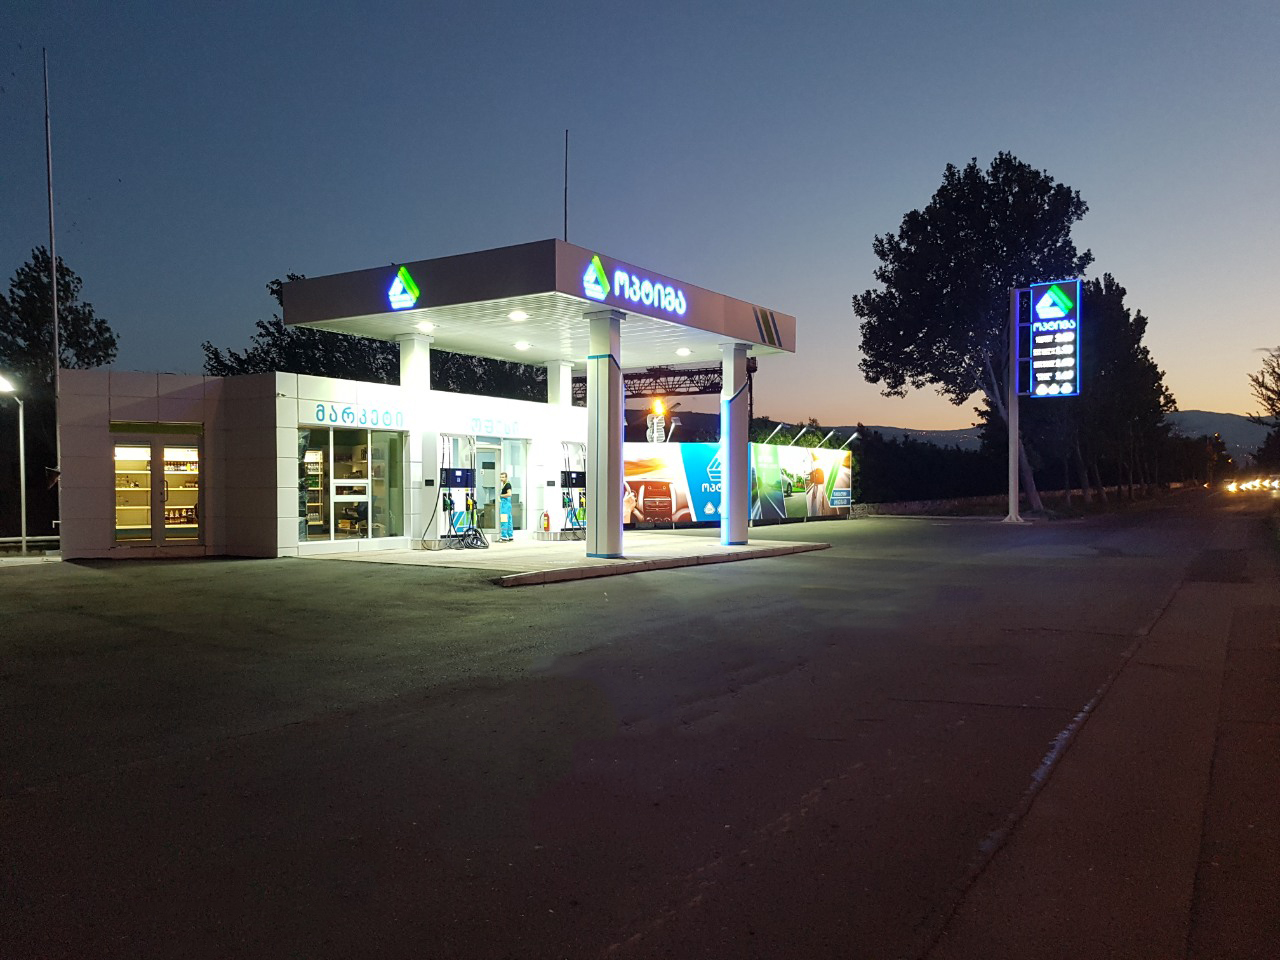 Petrol Stations' New Chain Has Appeared in Georgia